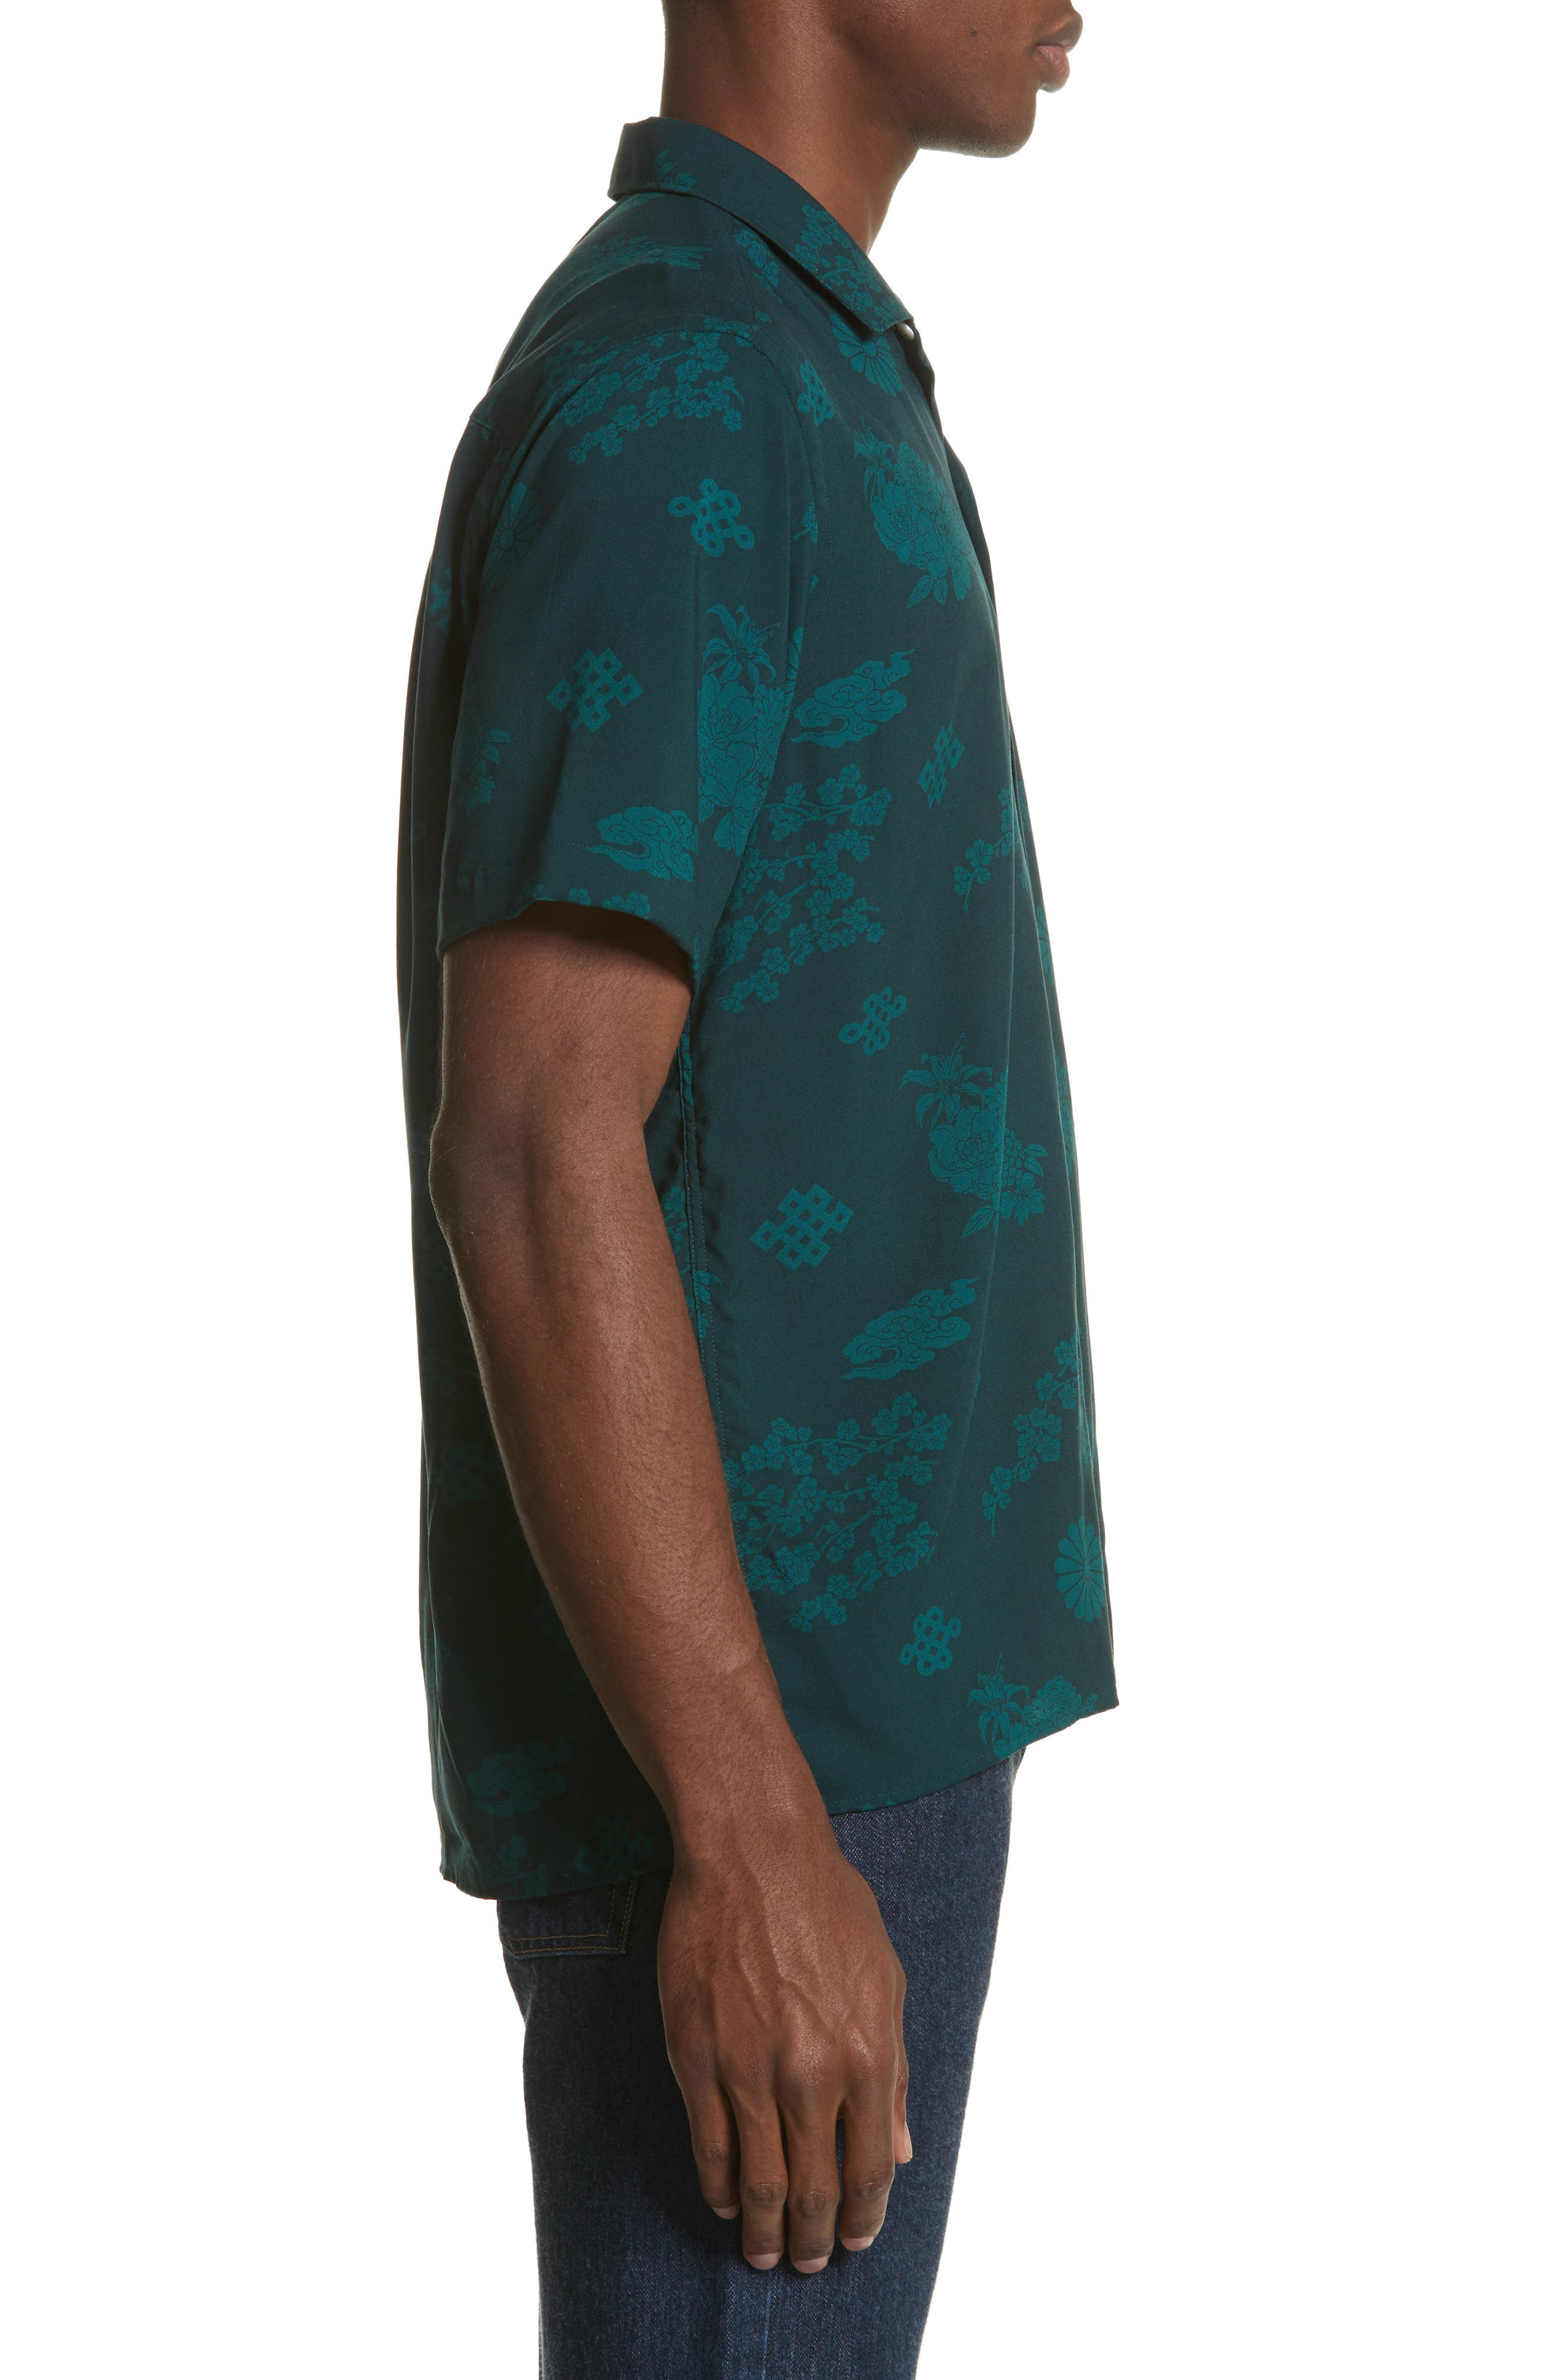 x The North Face Men's Floral Print Camp Shirt,                             Alternate thumbnail 4, color,                             Green Ground